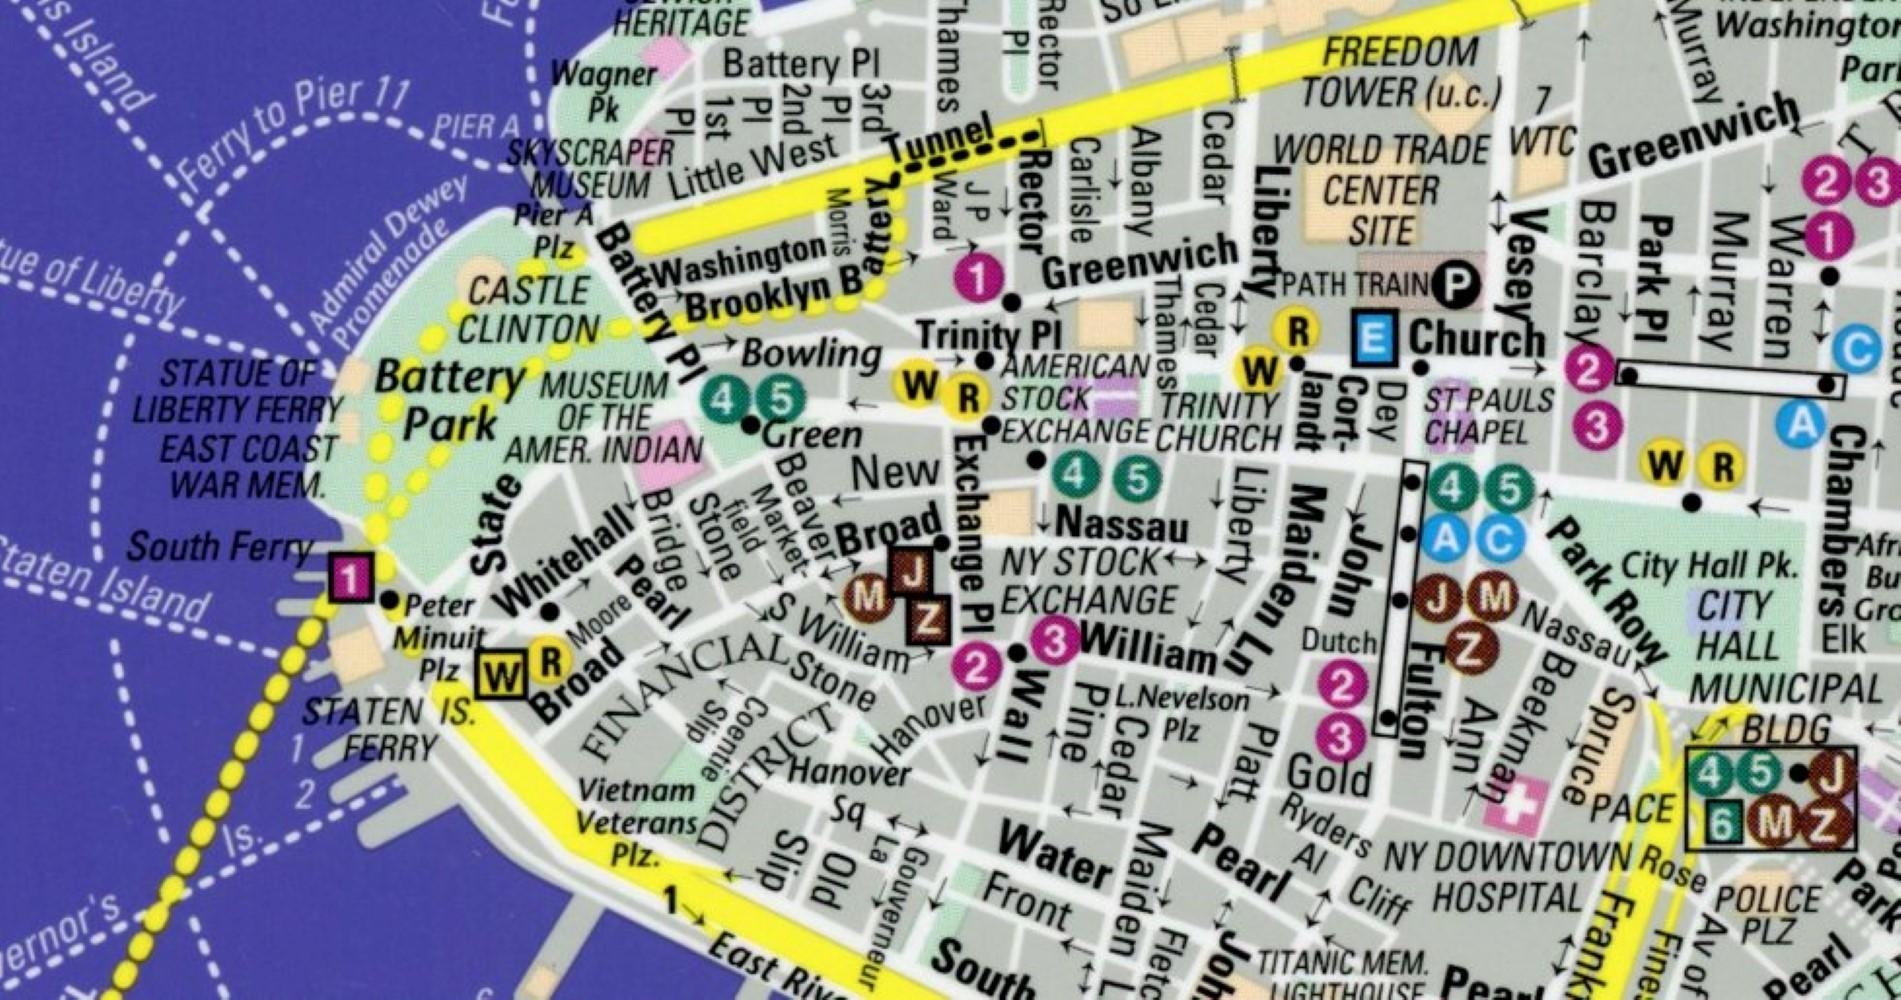 STREEWISE MANHATTAN : MAP - Laminated City ... on manhattan tourist map, manhattan south map, manhattan hotel map, manhattan on us map, manhattan nebraska map, manhattan new york subway, nyc map, new city street map, manhattan rooftop bars in december, midtown manhattan map, manhattan nd map, manhattan yonkers map, manhattan island, manhattan tx map, world trade center on a map, lower manhattan map, manhattan street map, 1920s manhattan map, manhattan los angeles map, manhattan avenues and streets,